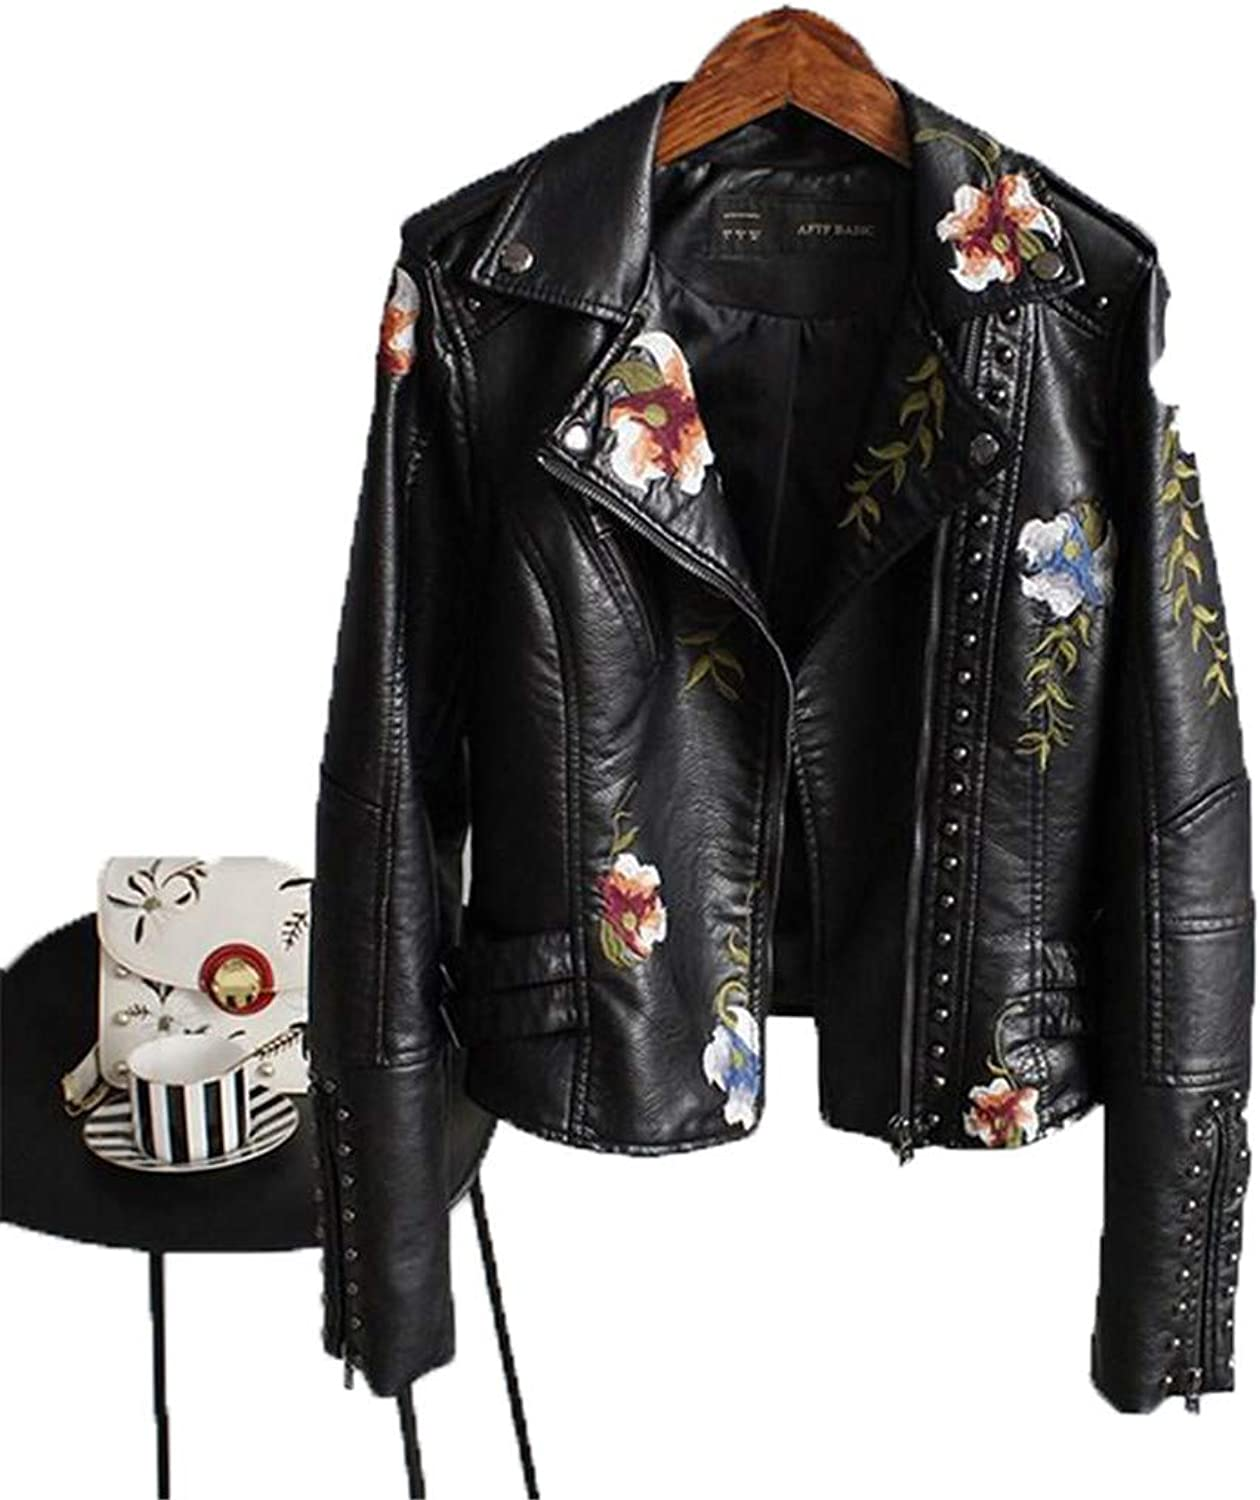 KEYUEyurei Women Floral Print Embroidery Faux Soft Leather Jacket Coat TurnDown Collar Casual Pu Motorcycle Punk Outerwear